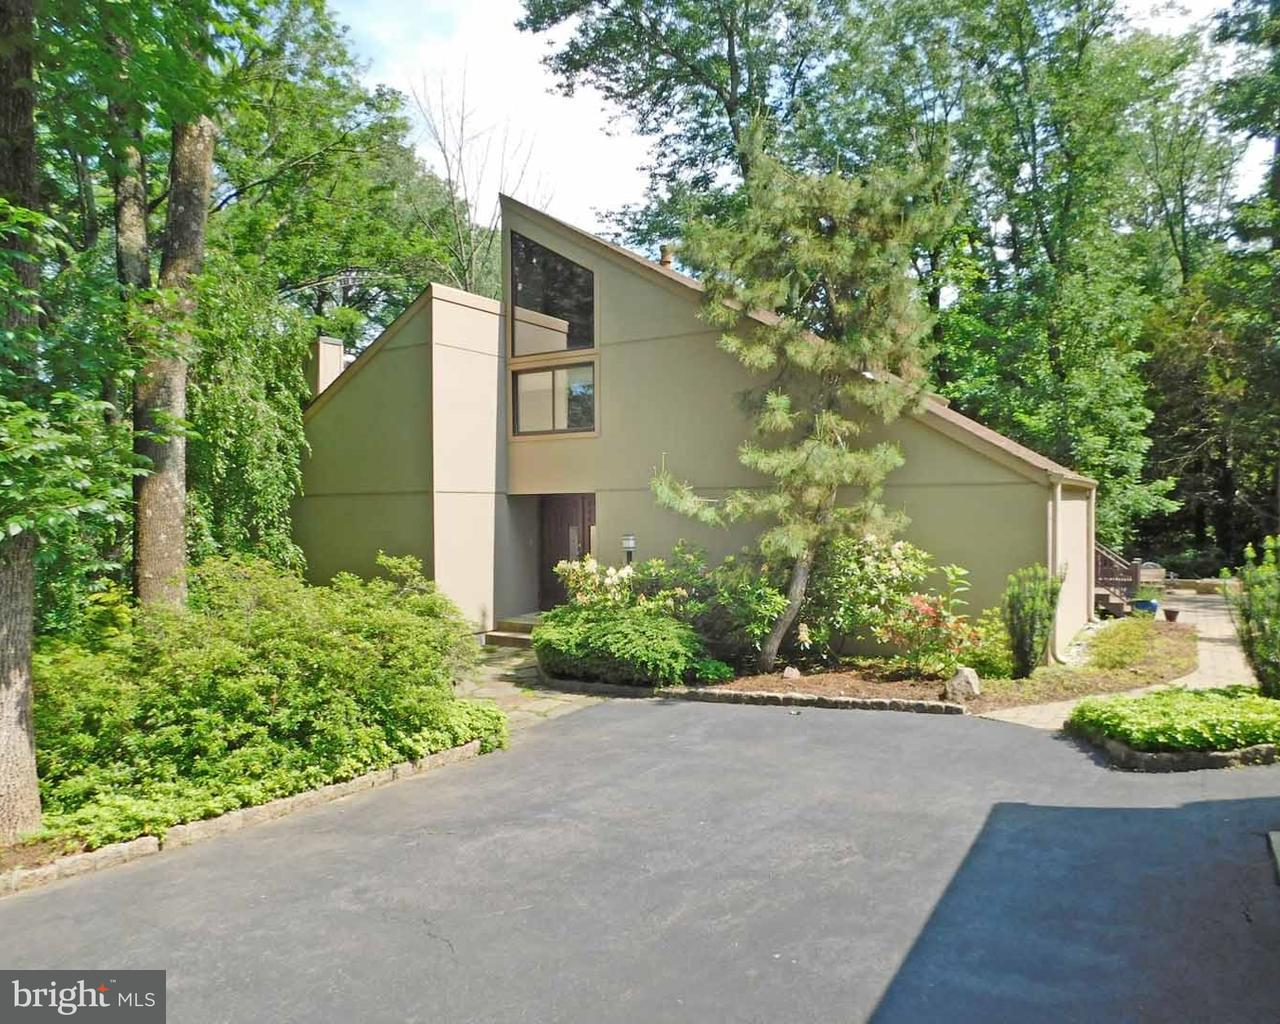 Single Family Home for Sale at 8 HEMLOCK Lane Ewing Township, New Jersey 08628 United StatesMunicipality: Ewing Township